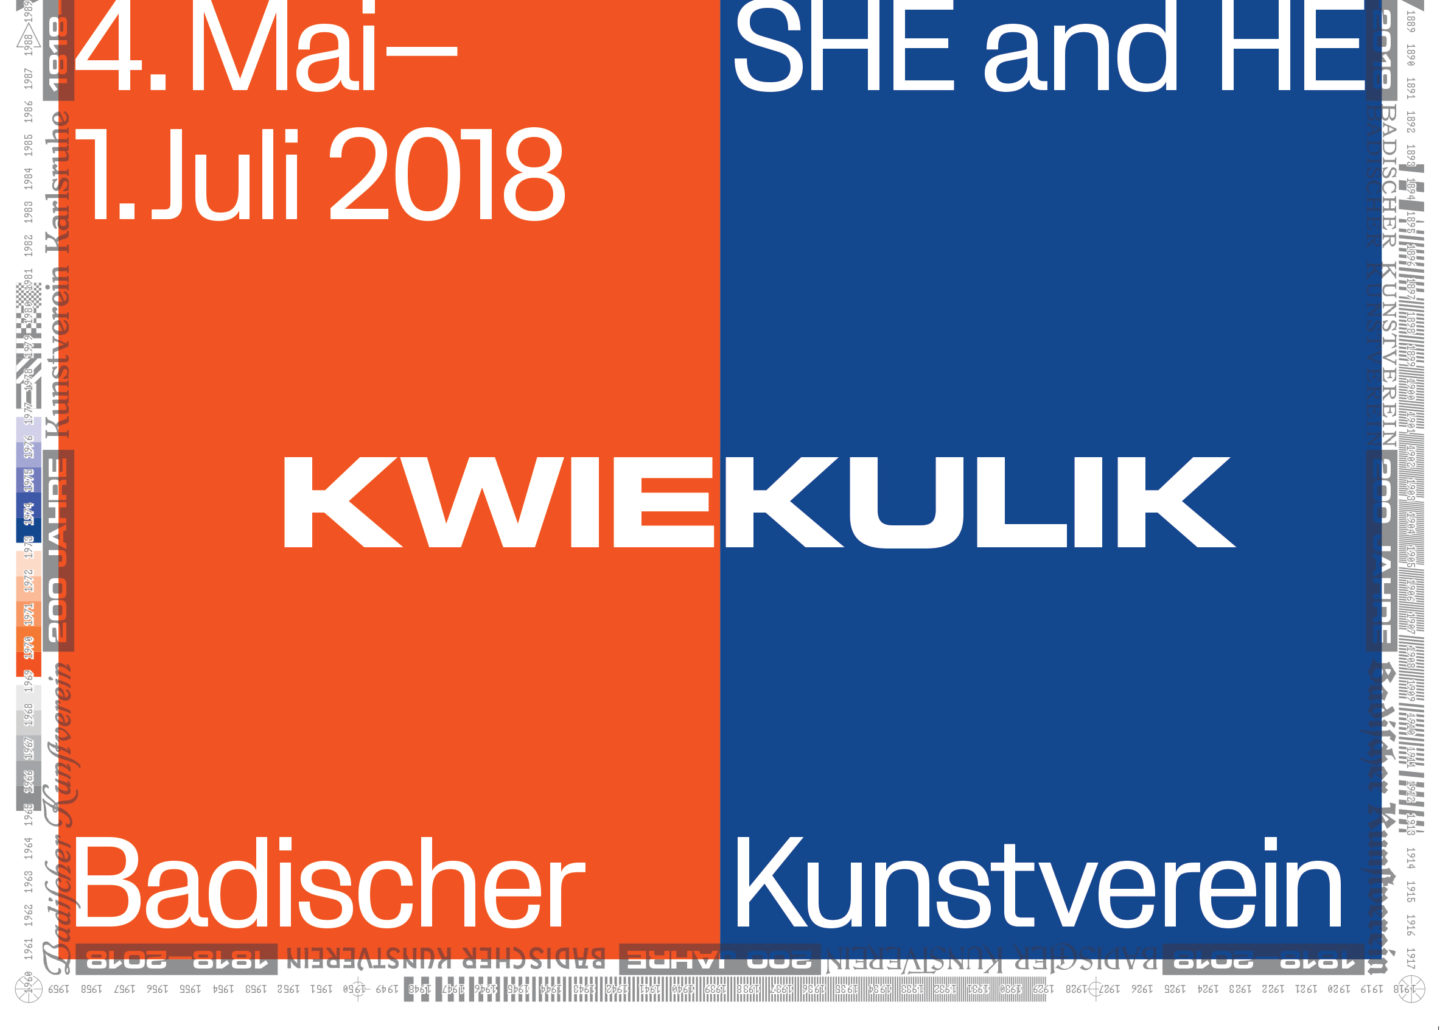 KwieKulik: SHE and HE w Badischer Kunstverein